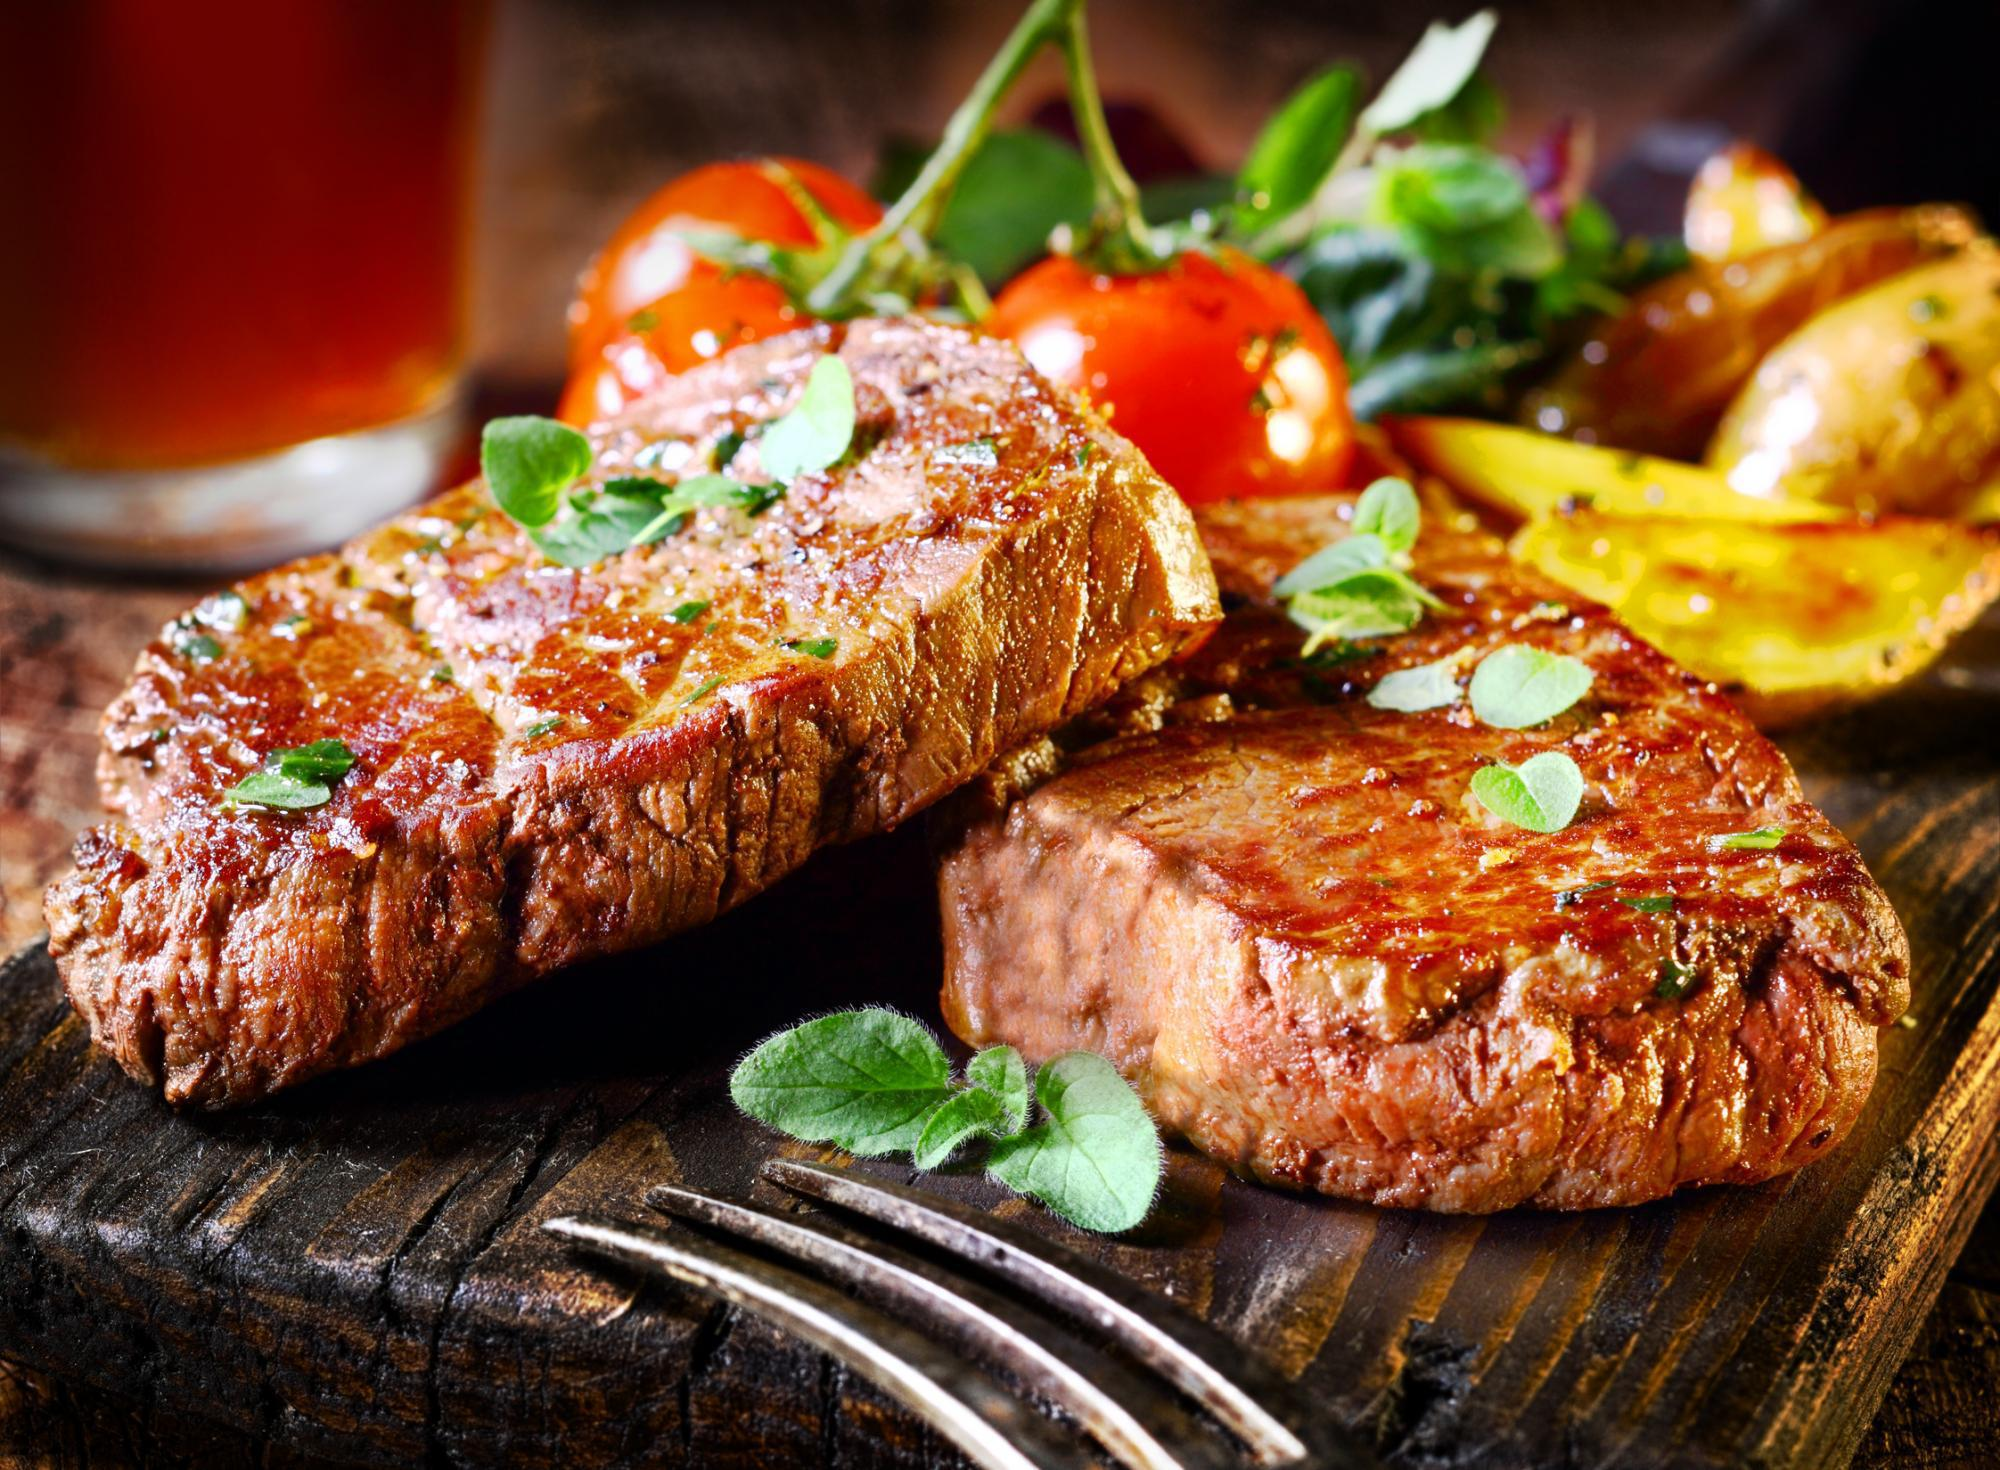 How To Cook The Best Steak In The World